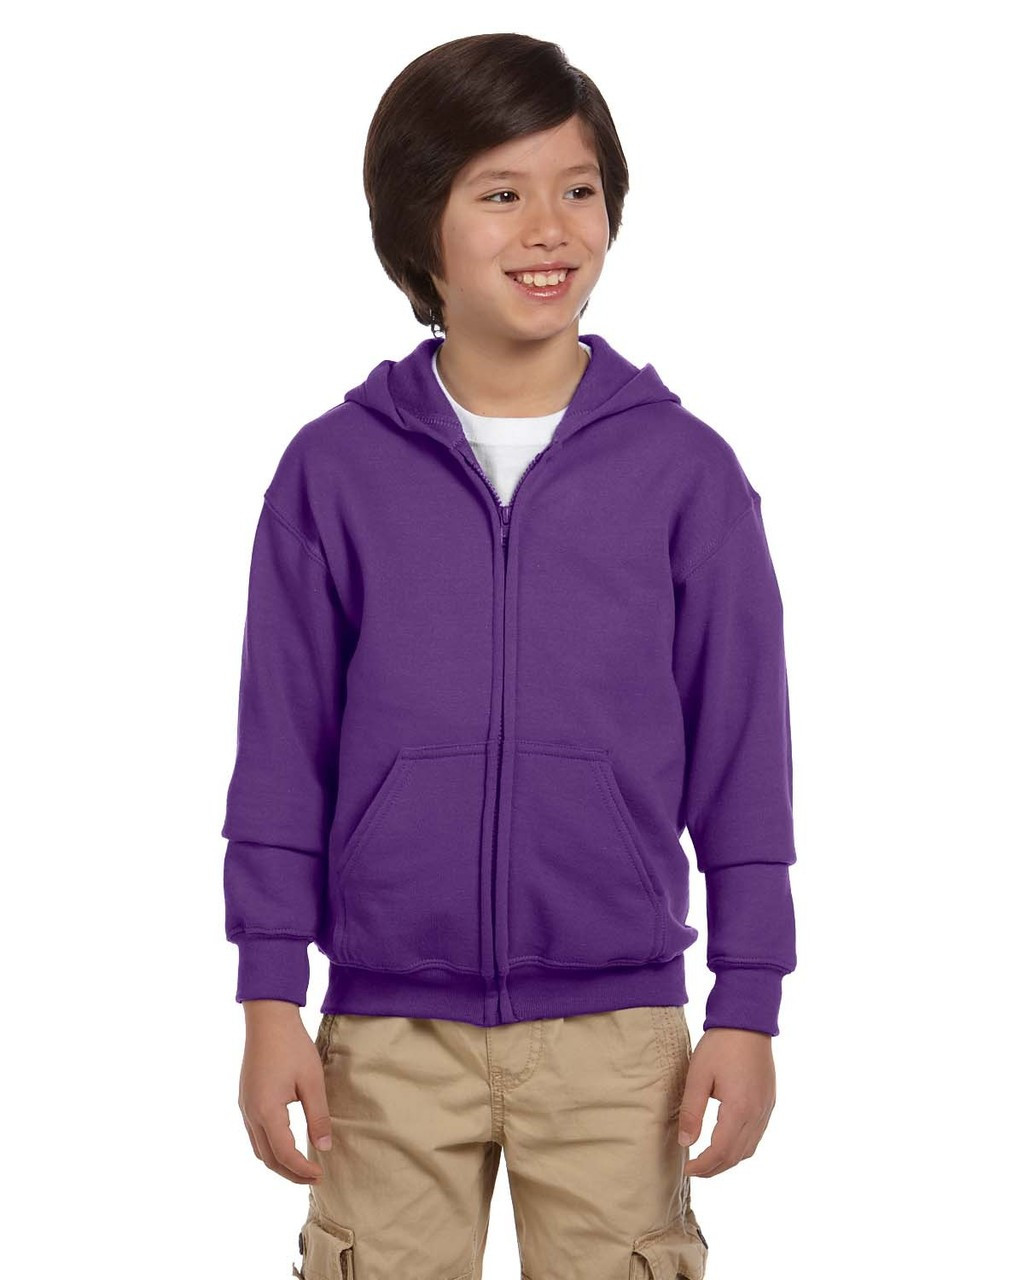 Purple - G186B Gildan Heavy Blend Youth 50/50 Full Zip Hoodie | Blankclothing.ca